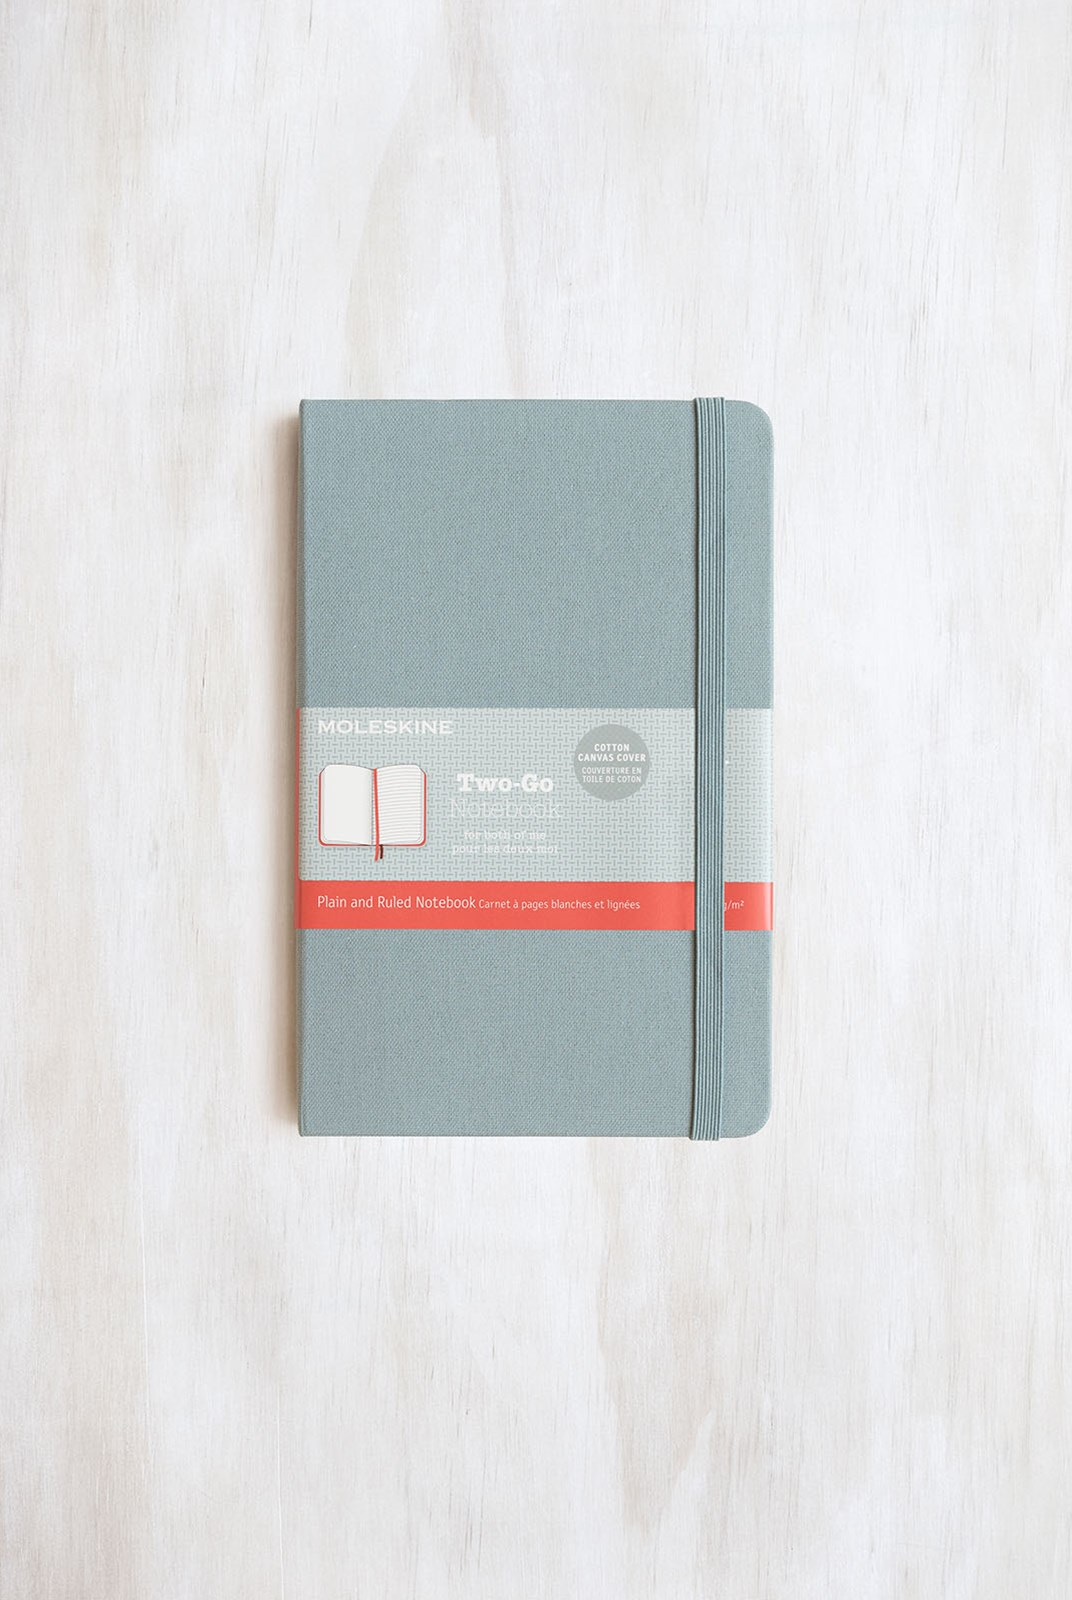 Moleskine - Two-Go Notebook - Canvas Cover - Ruled + Plain - Medium - Saxe Blue